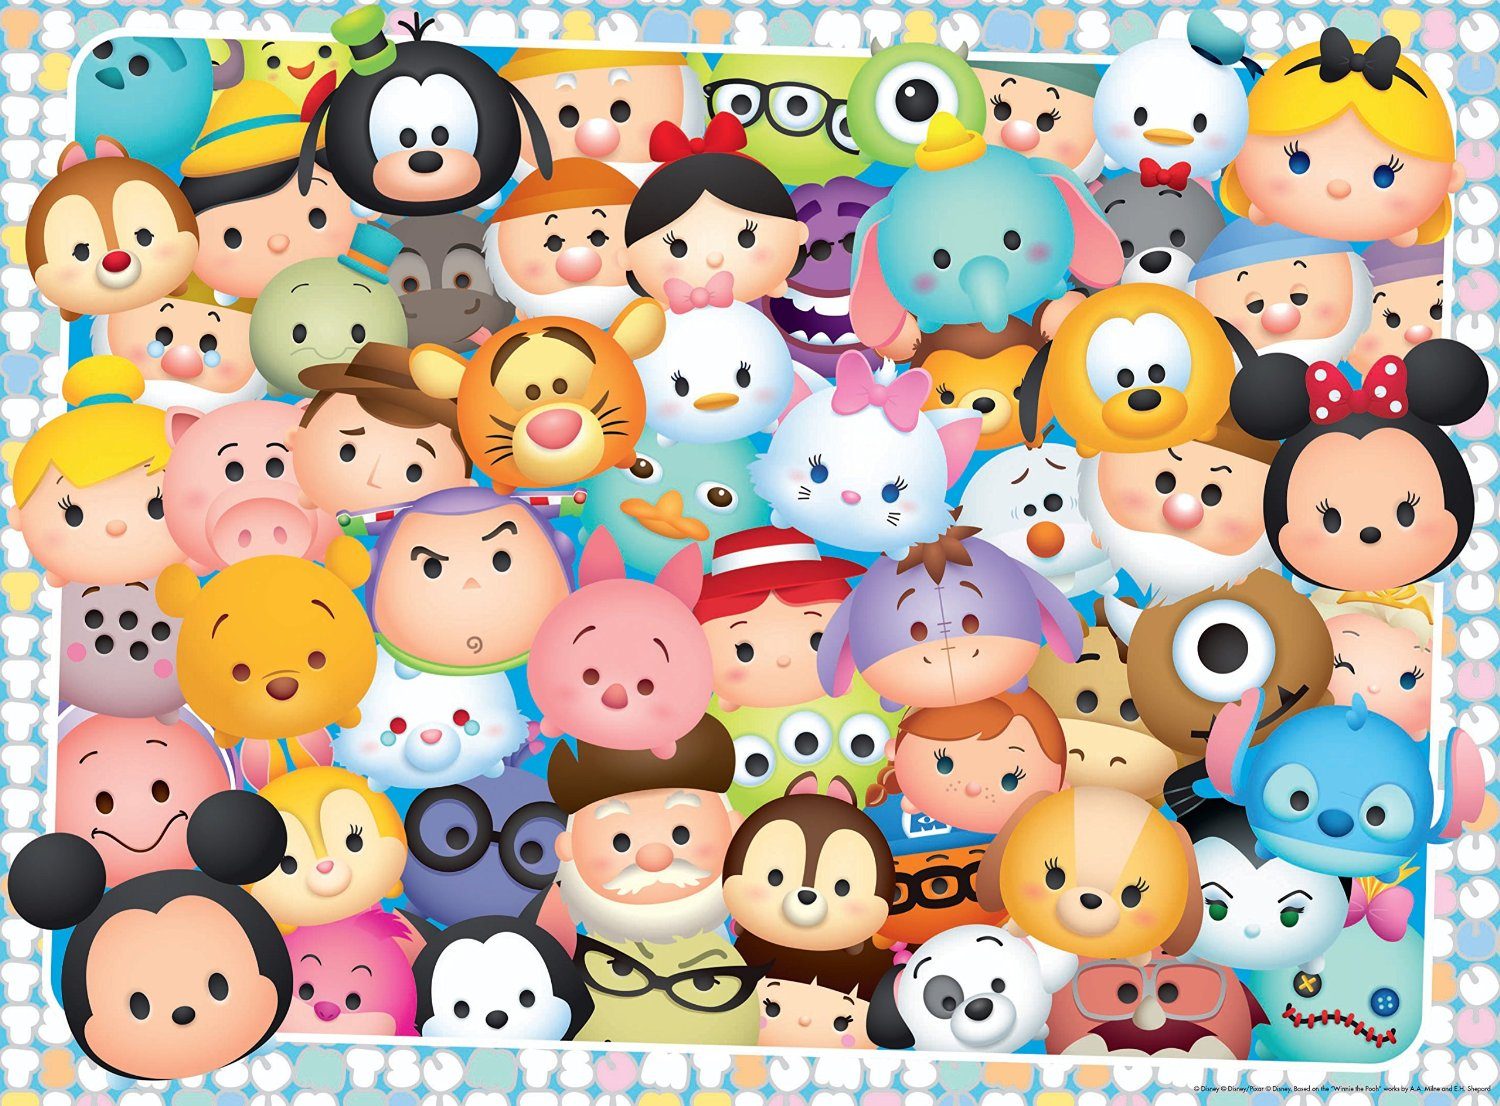 Disney Tsum Tsum 1500—1106 cartoons